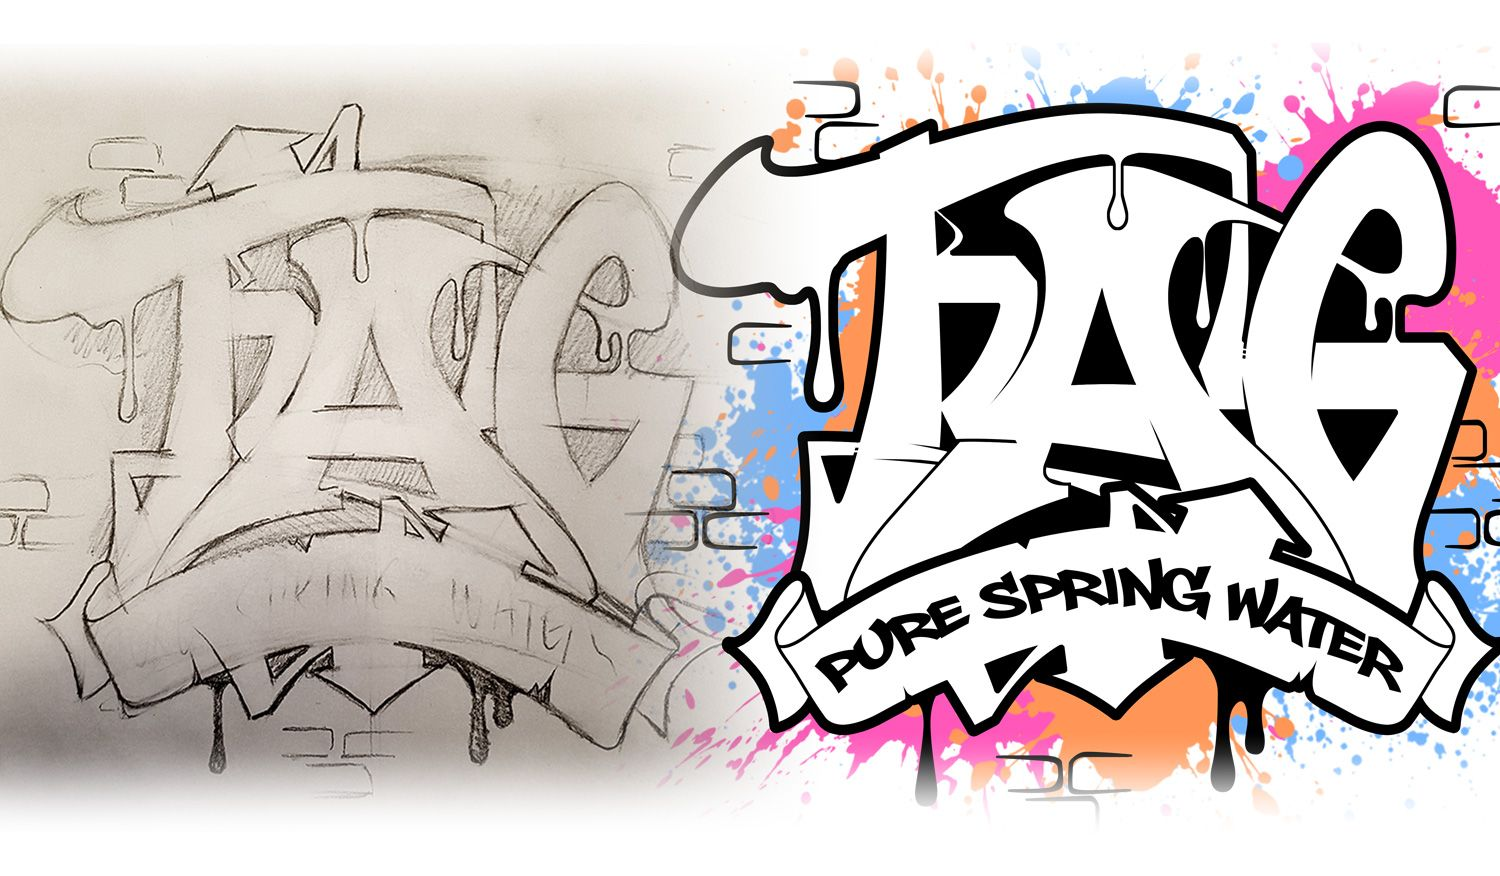 Custom Graffiti Illusration for a bottled water company  | fonts in